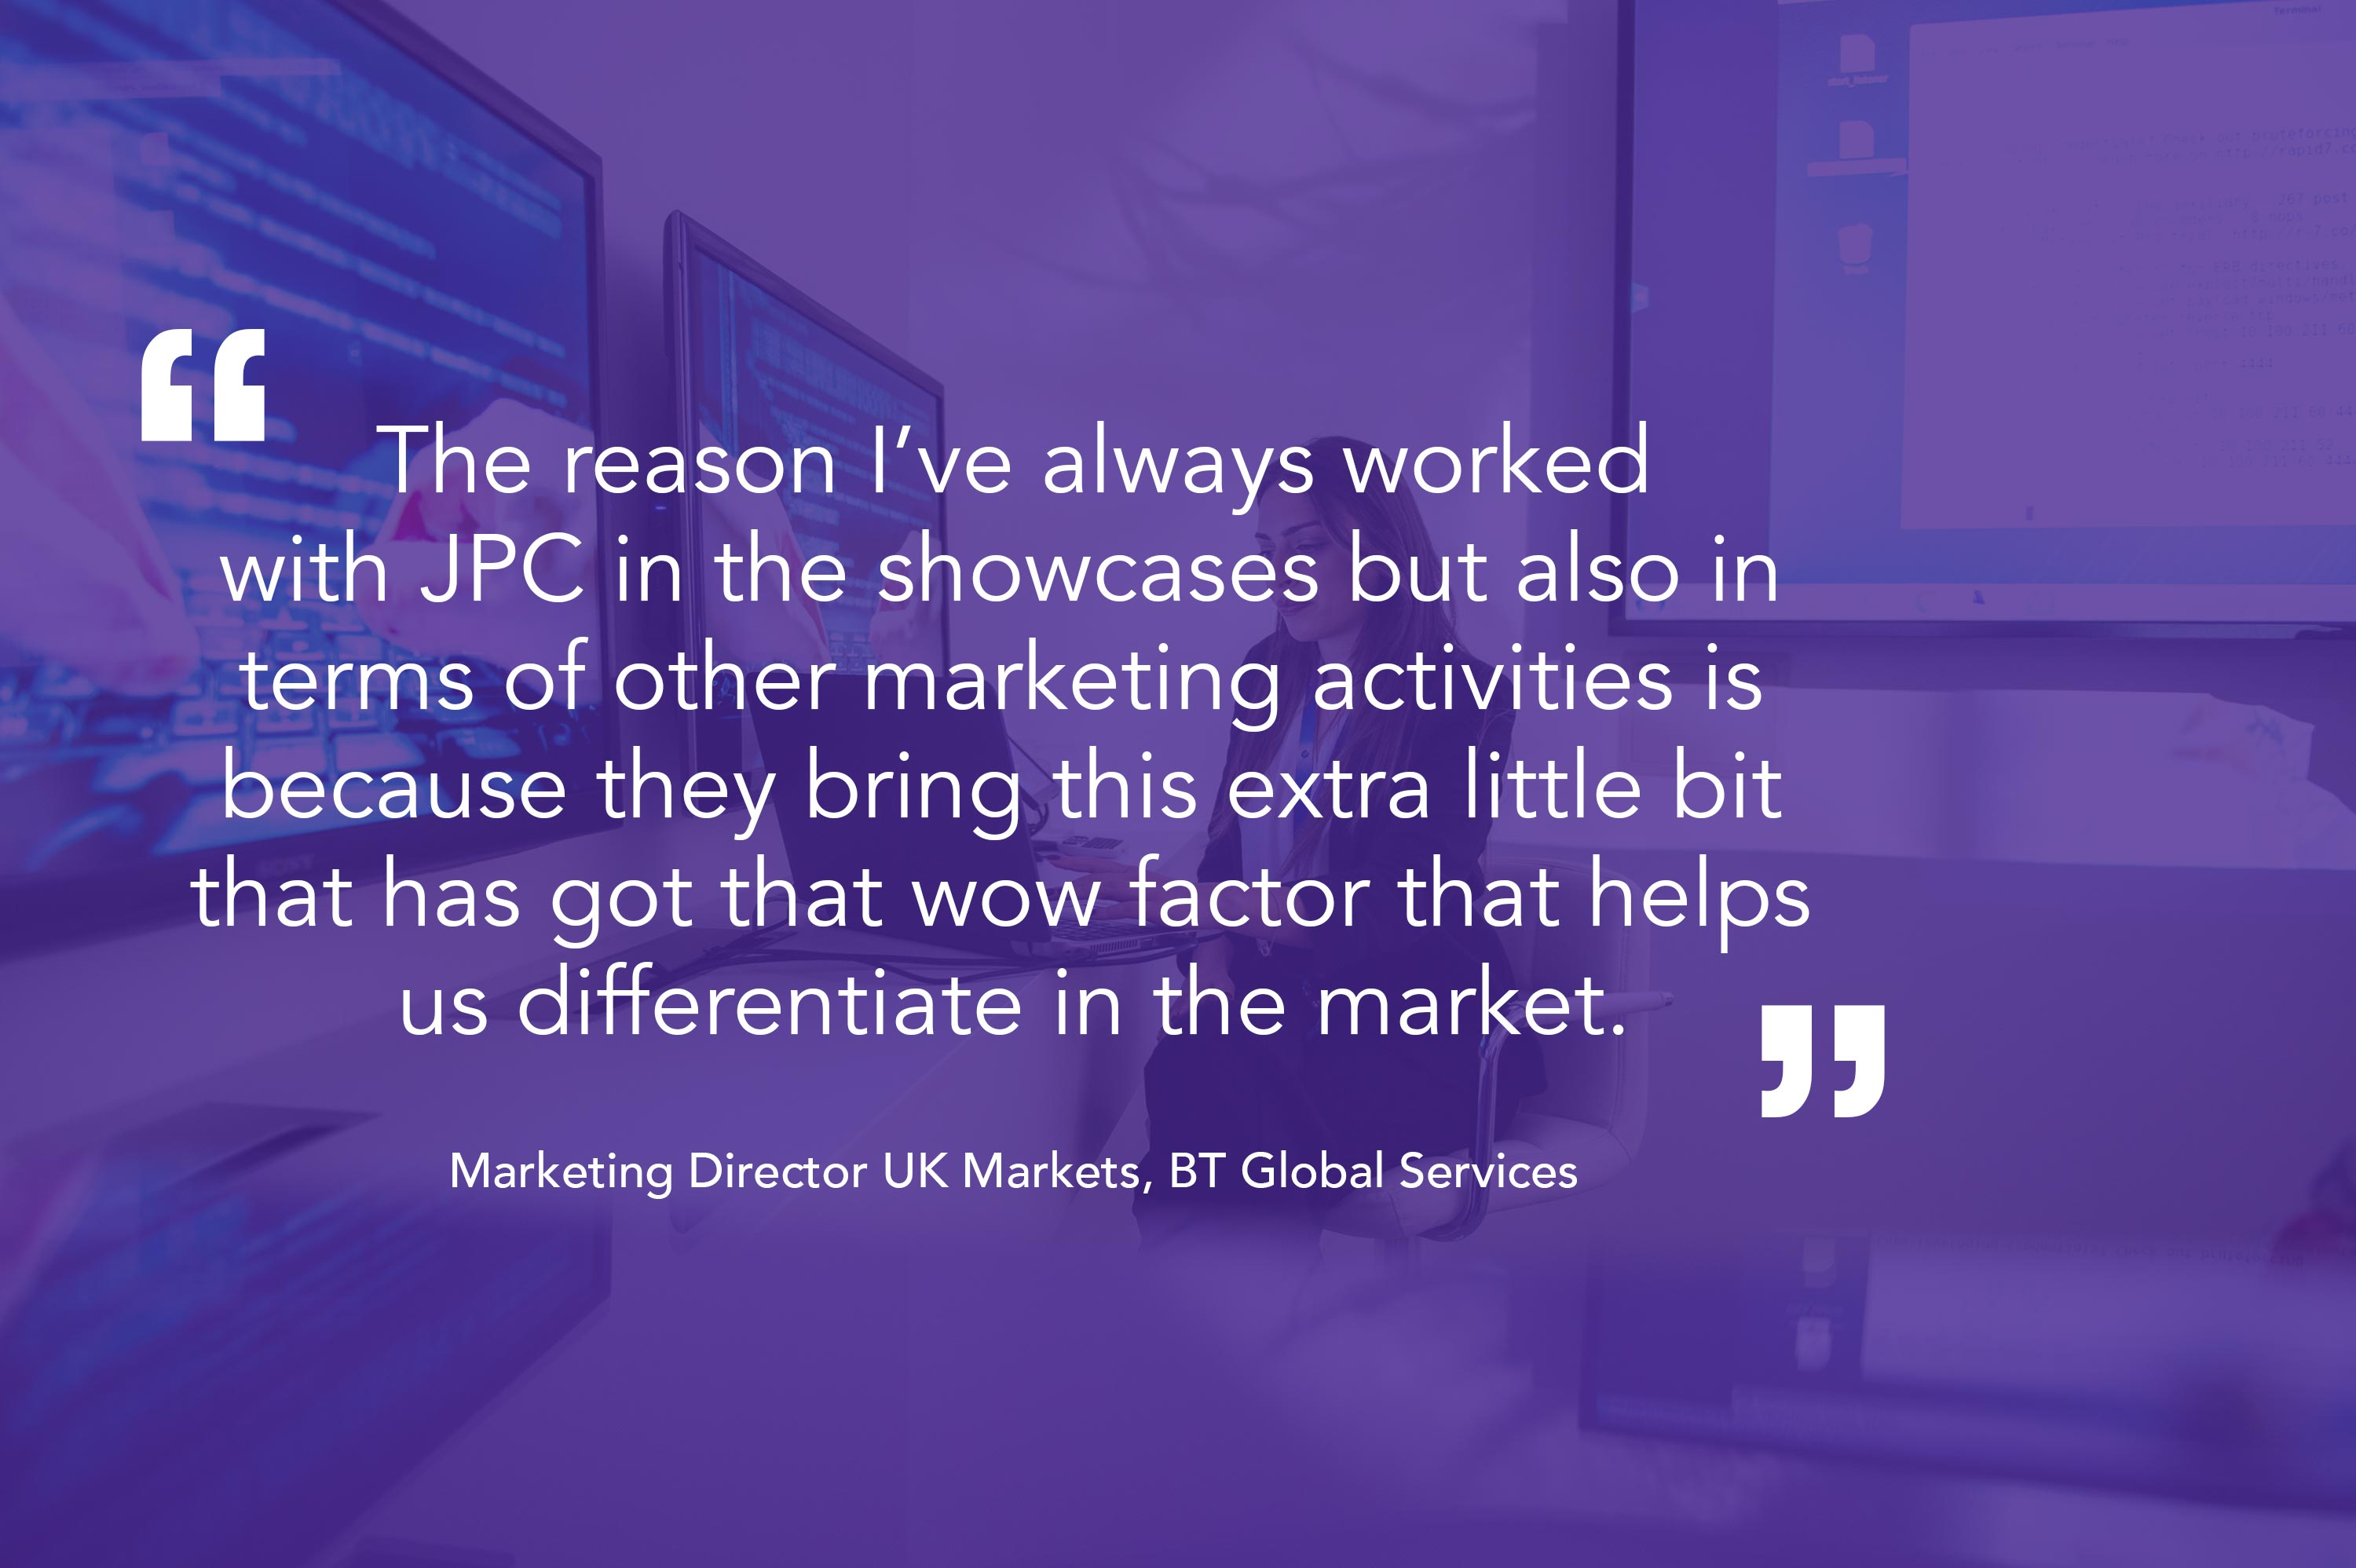 Marketing-Director-UK-Markets-BT-Global-Services-quote